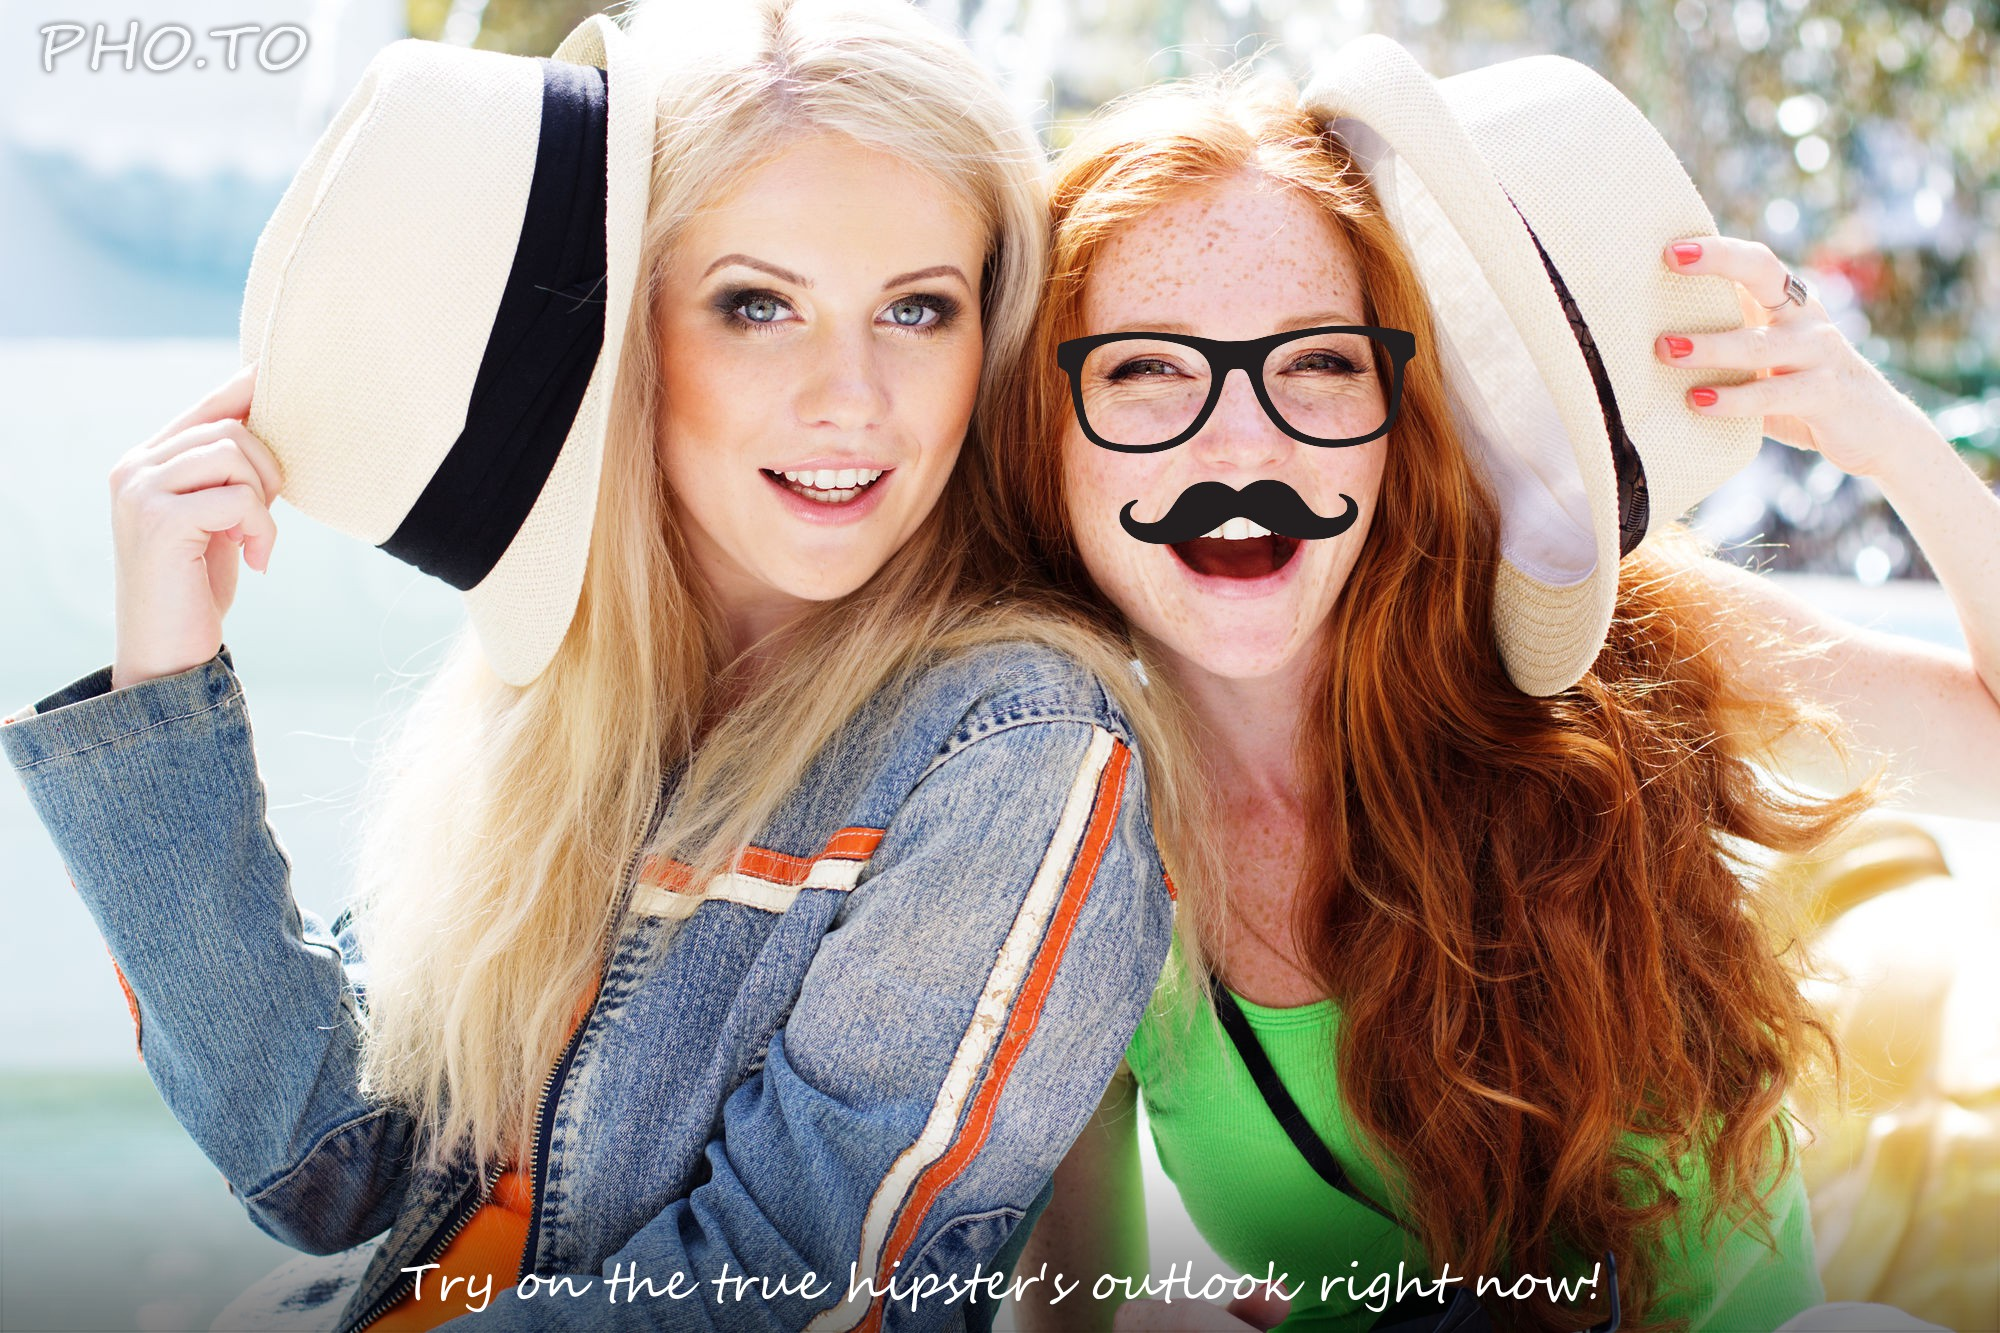 Glasses and mustache are added to a photo of laughing girls.